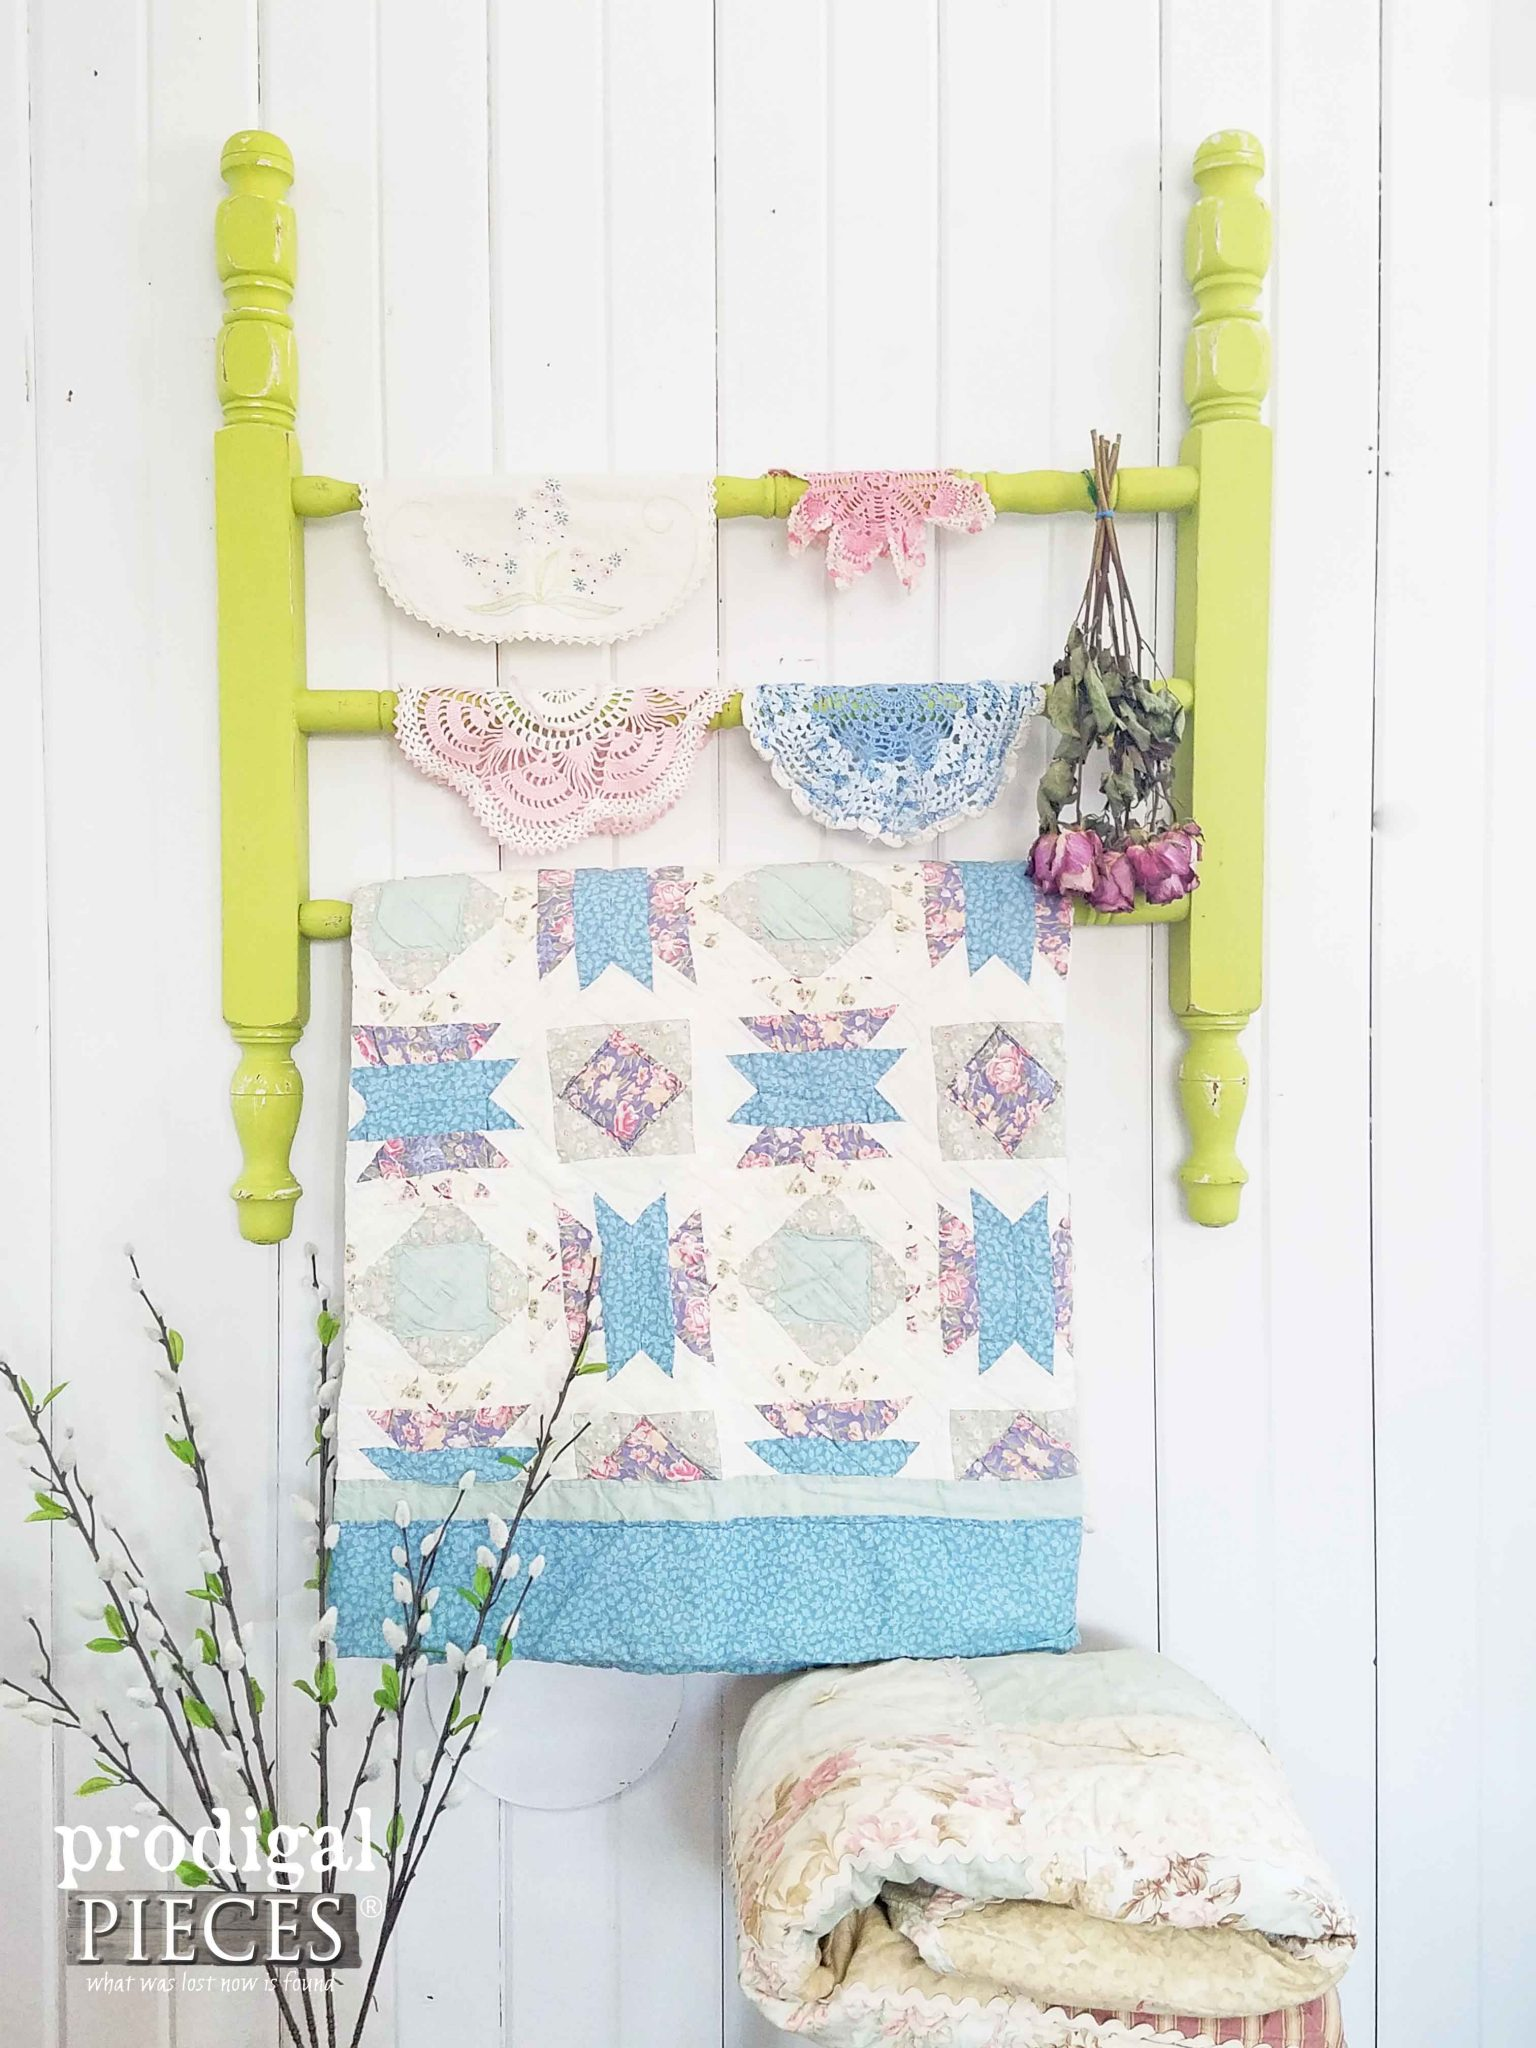 Rustic Cottage Chic Quilt Rack from Repurposed Parts by Prodigal Pieces | prodigalpieces.com